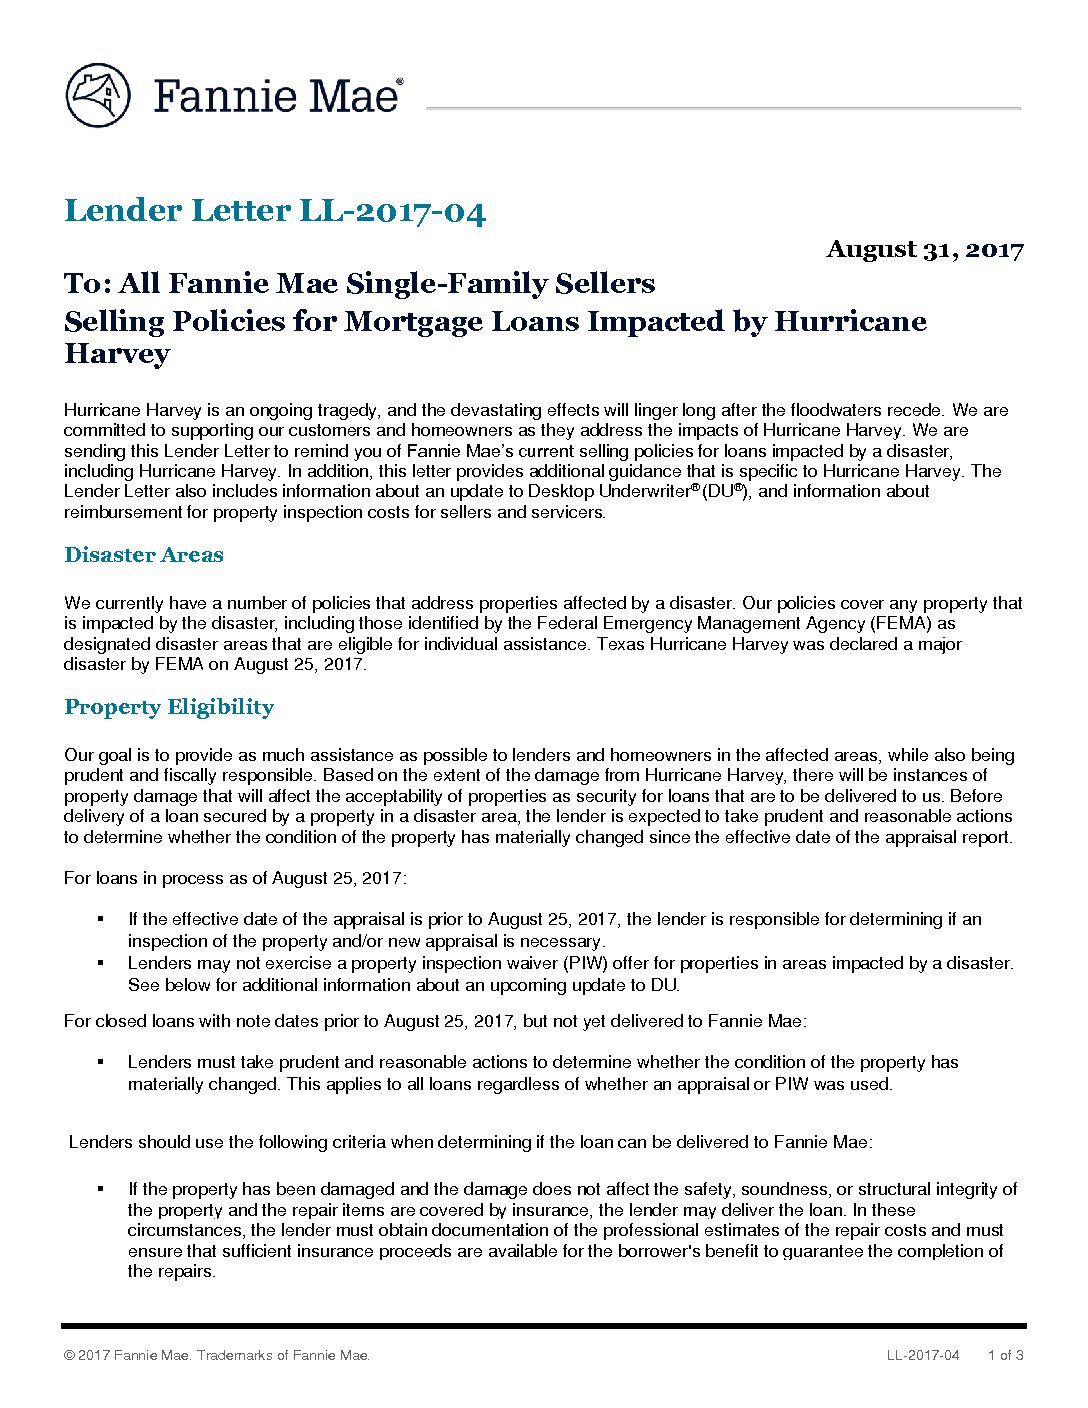 Click Here To View The Fannie Mae Lender Letter Tena